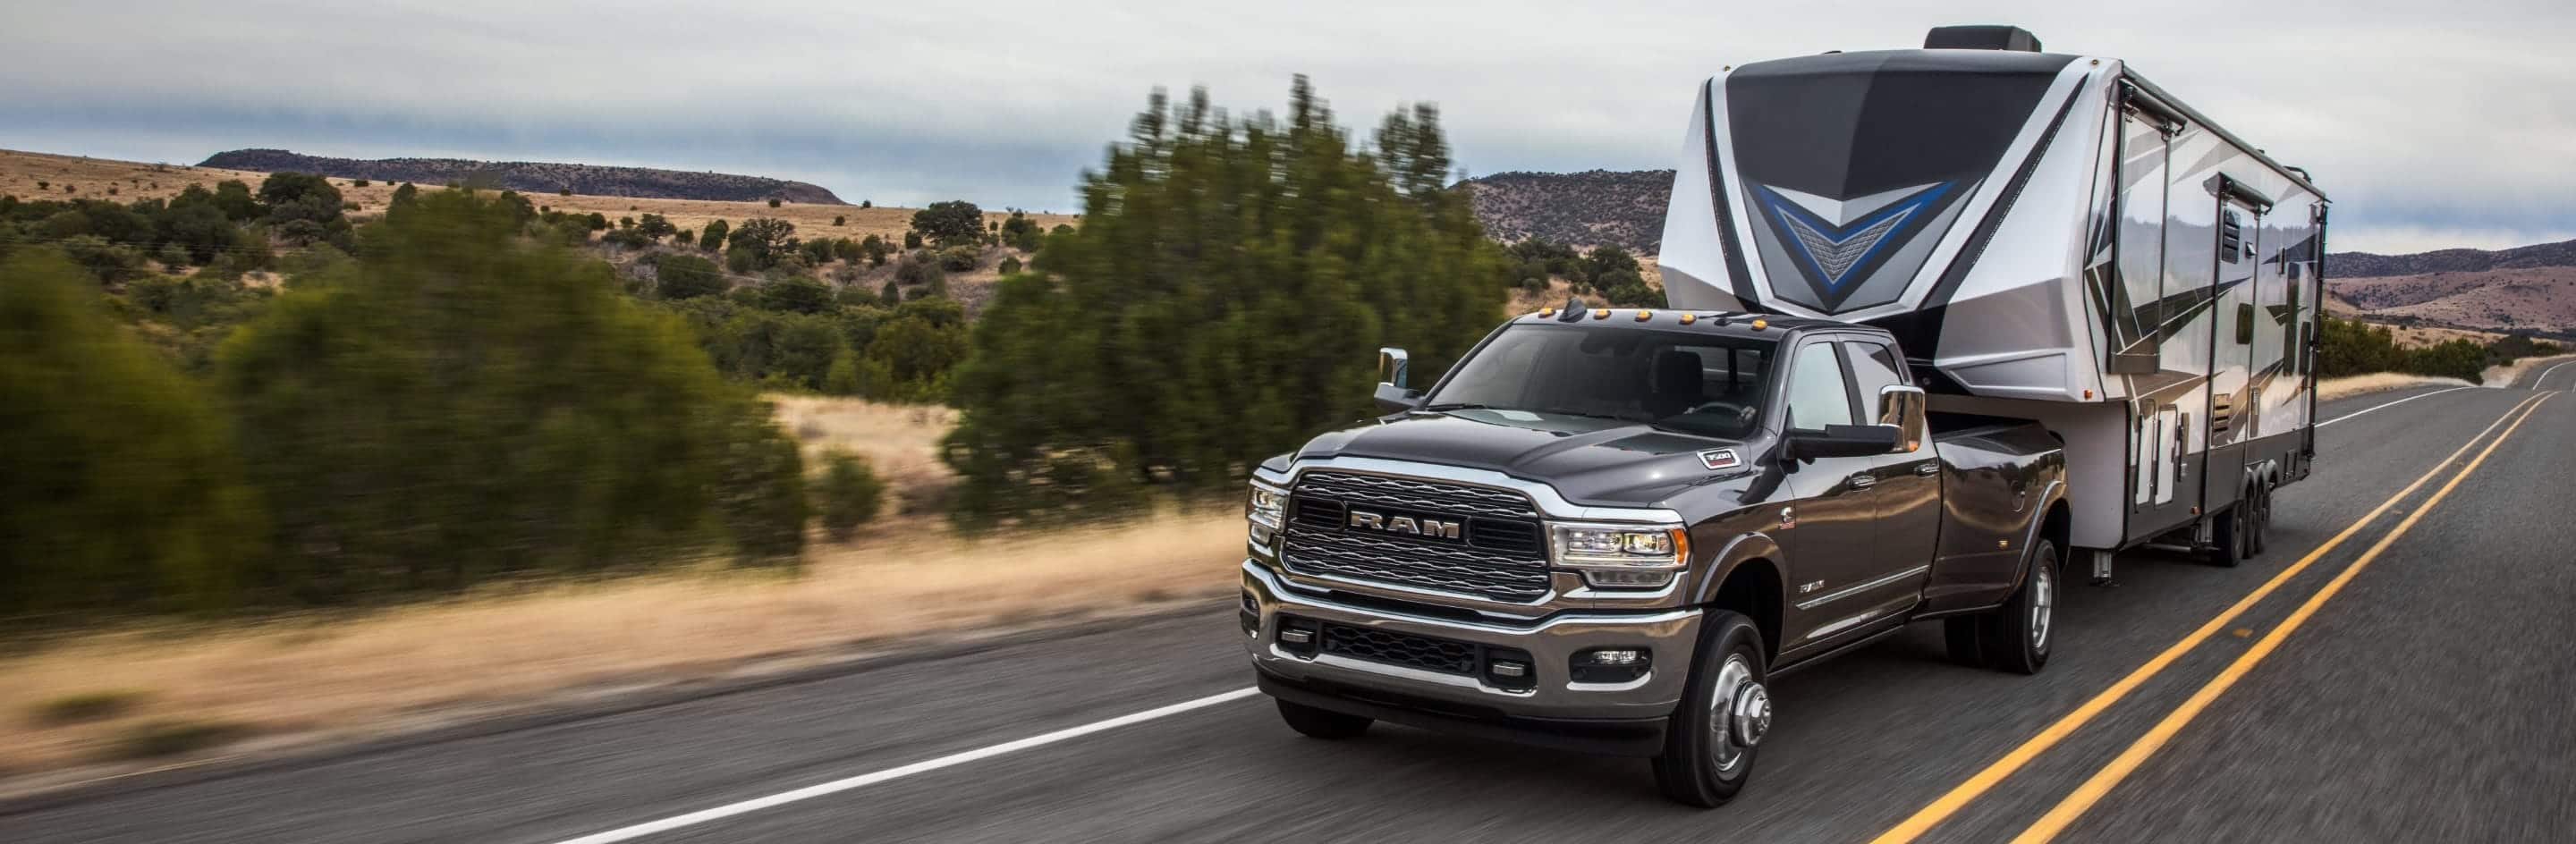 Ram Towing Capacity Towing Payload Capacity Guide